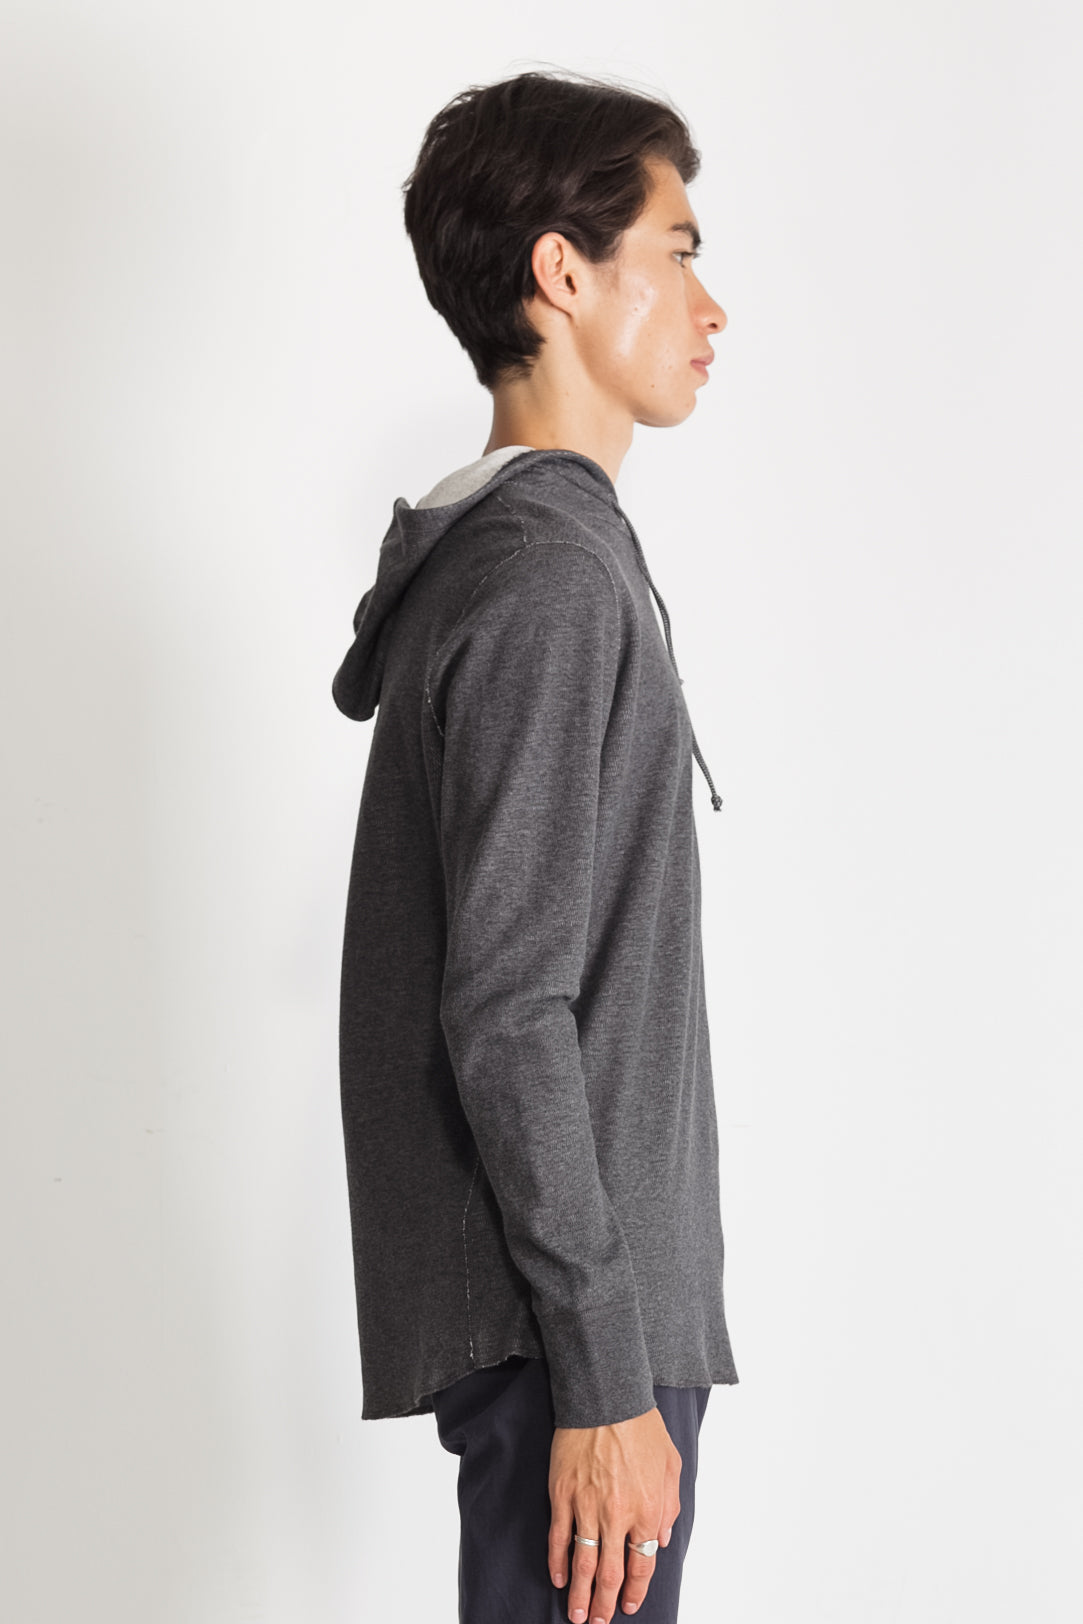 Mesh Thermal Pullover Hoodie in Melange Charcoal NS2155-1